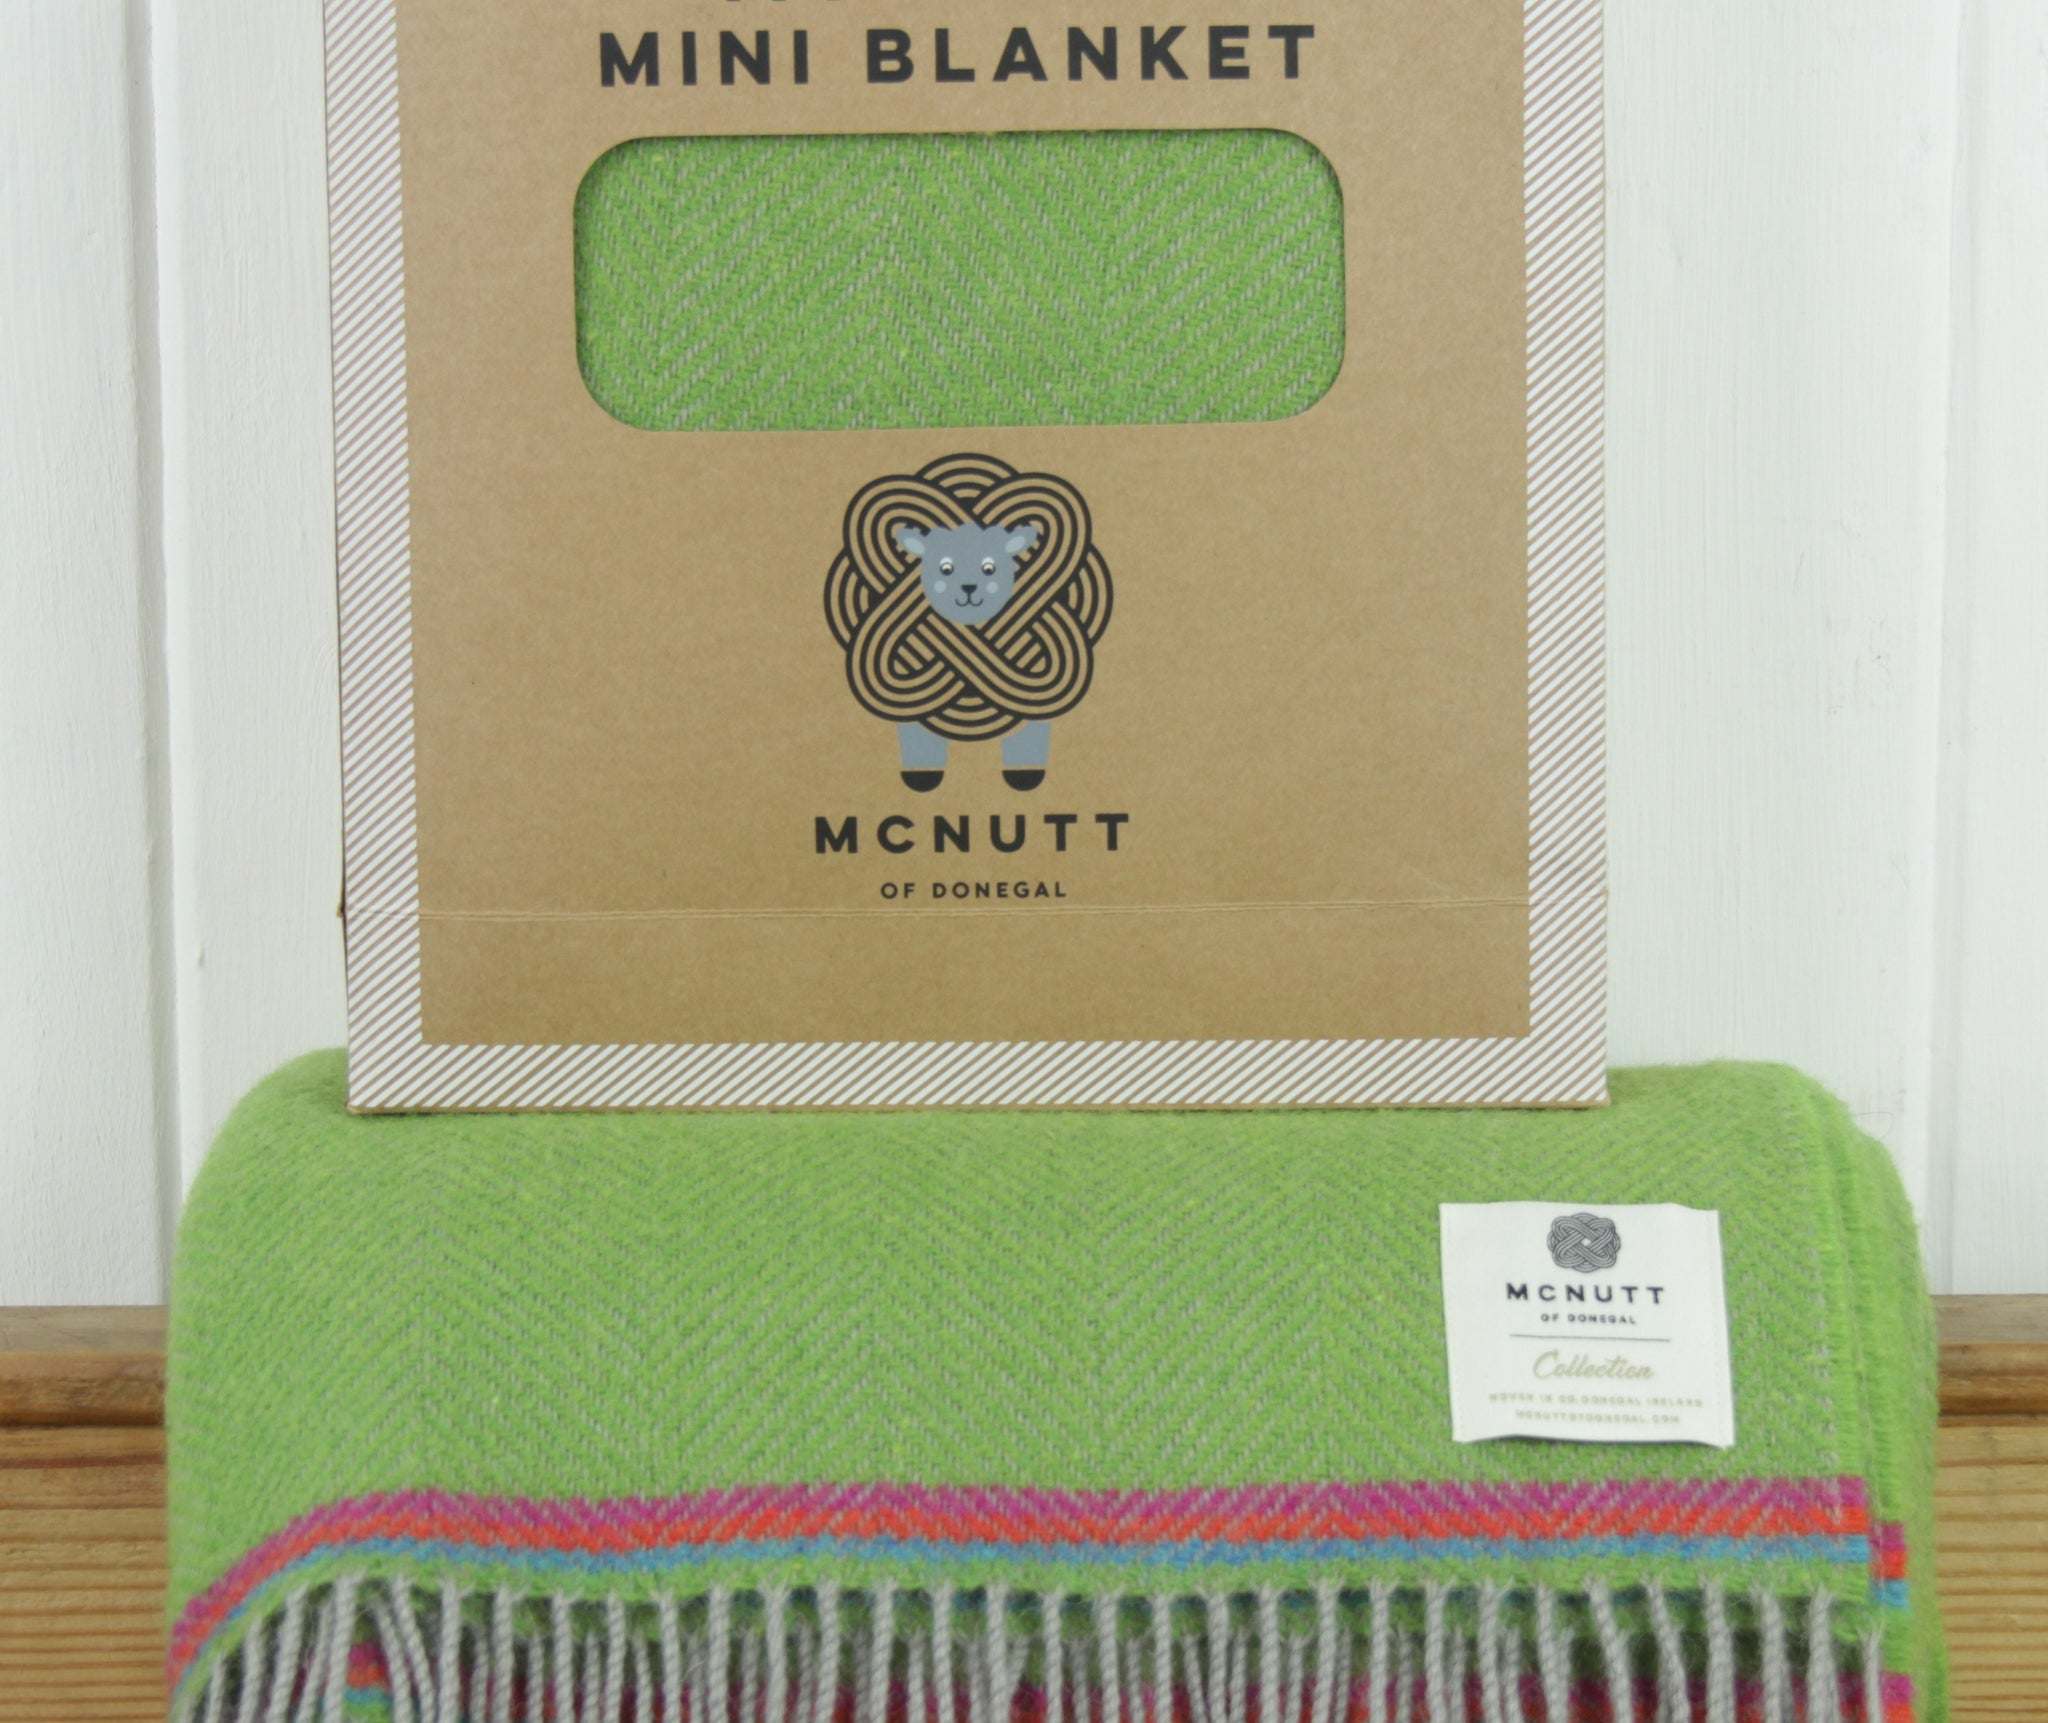 My First Mini Blanket, Parrot Green, McNutt